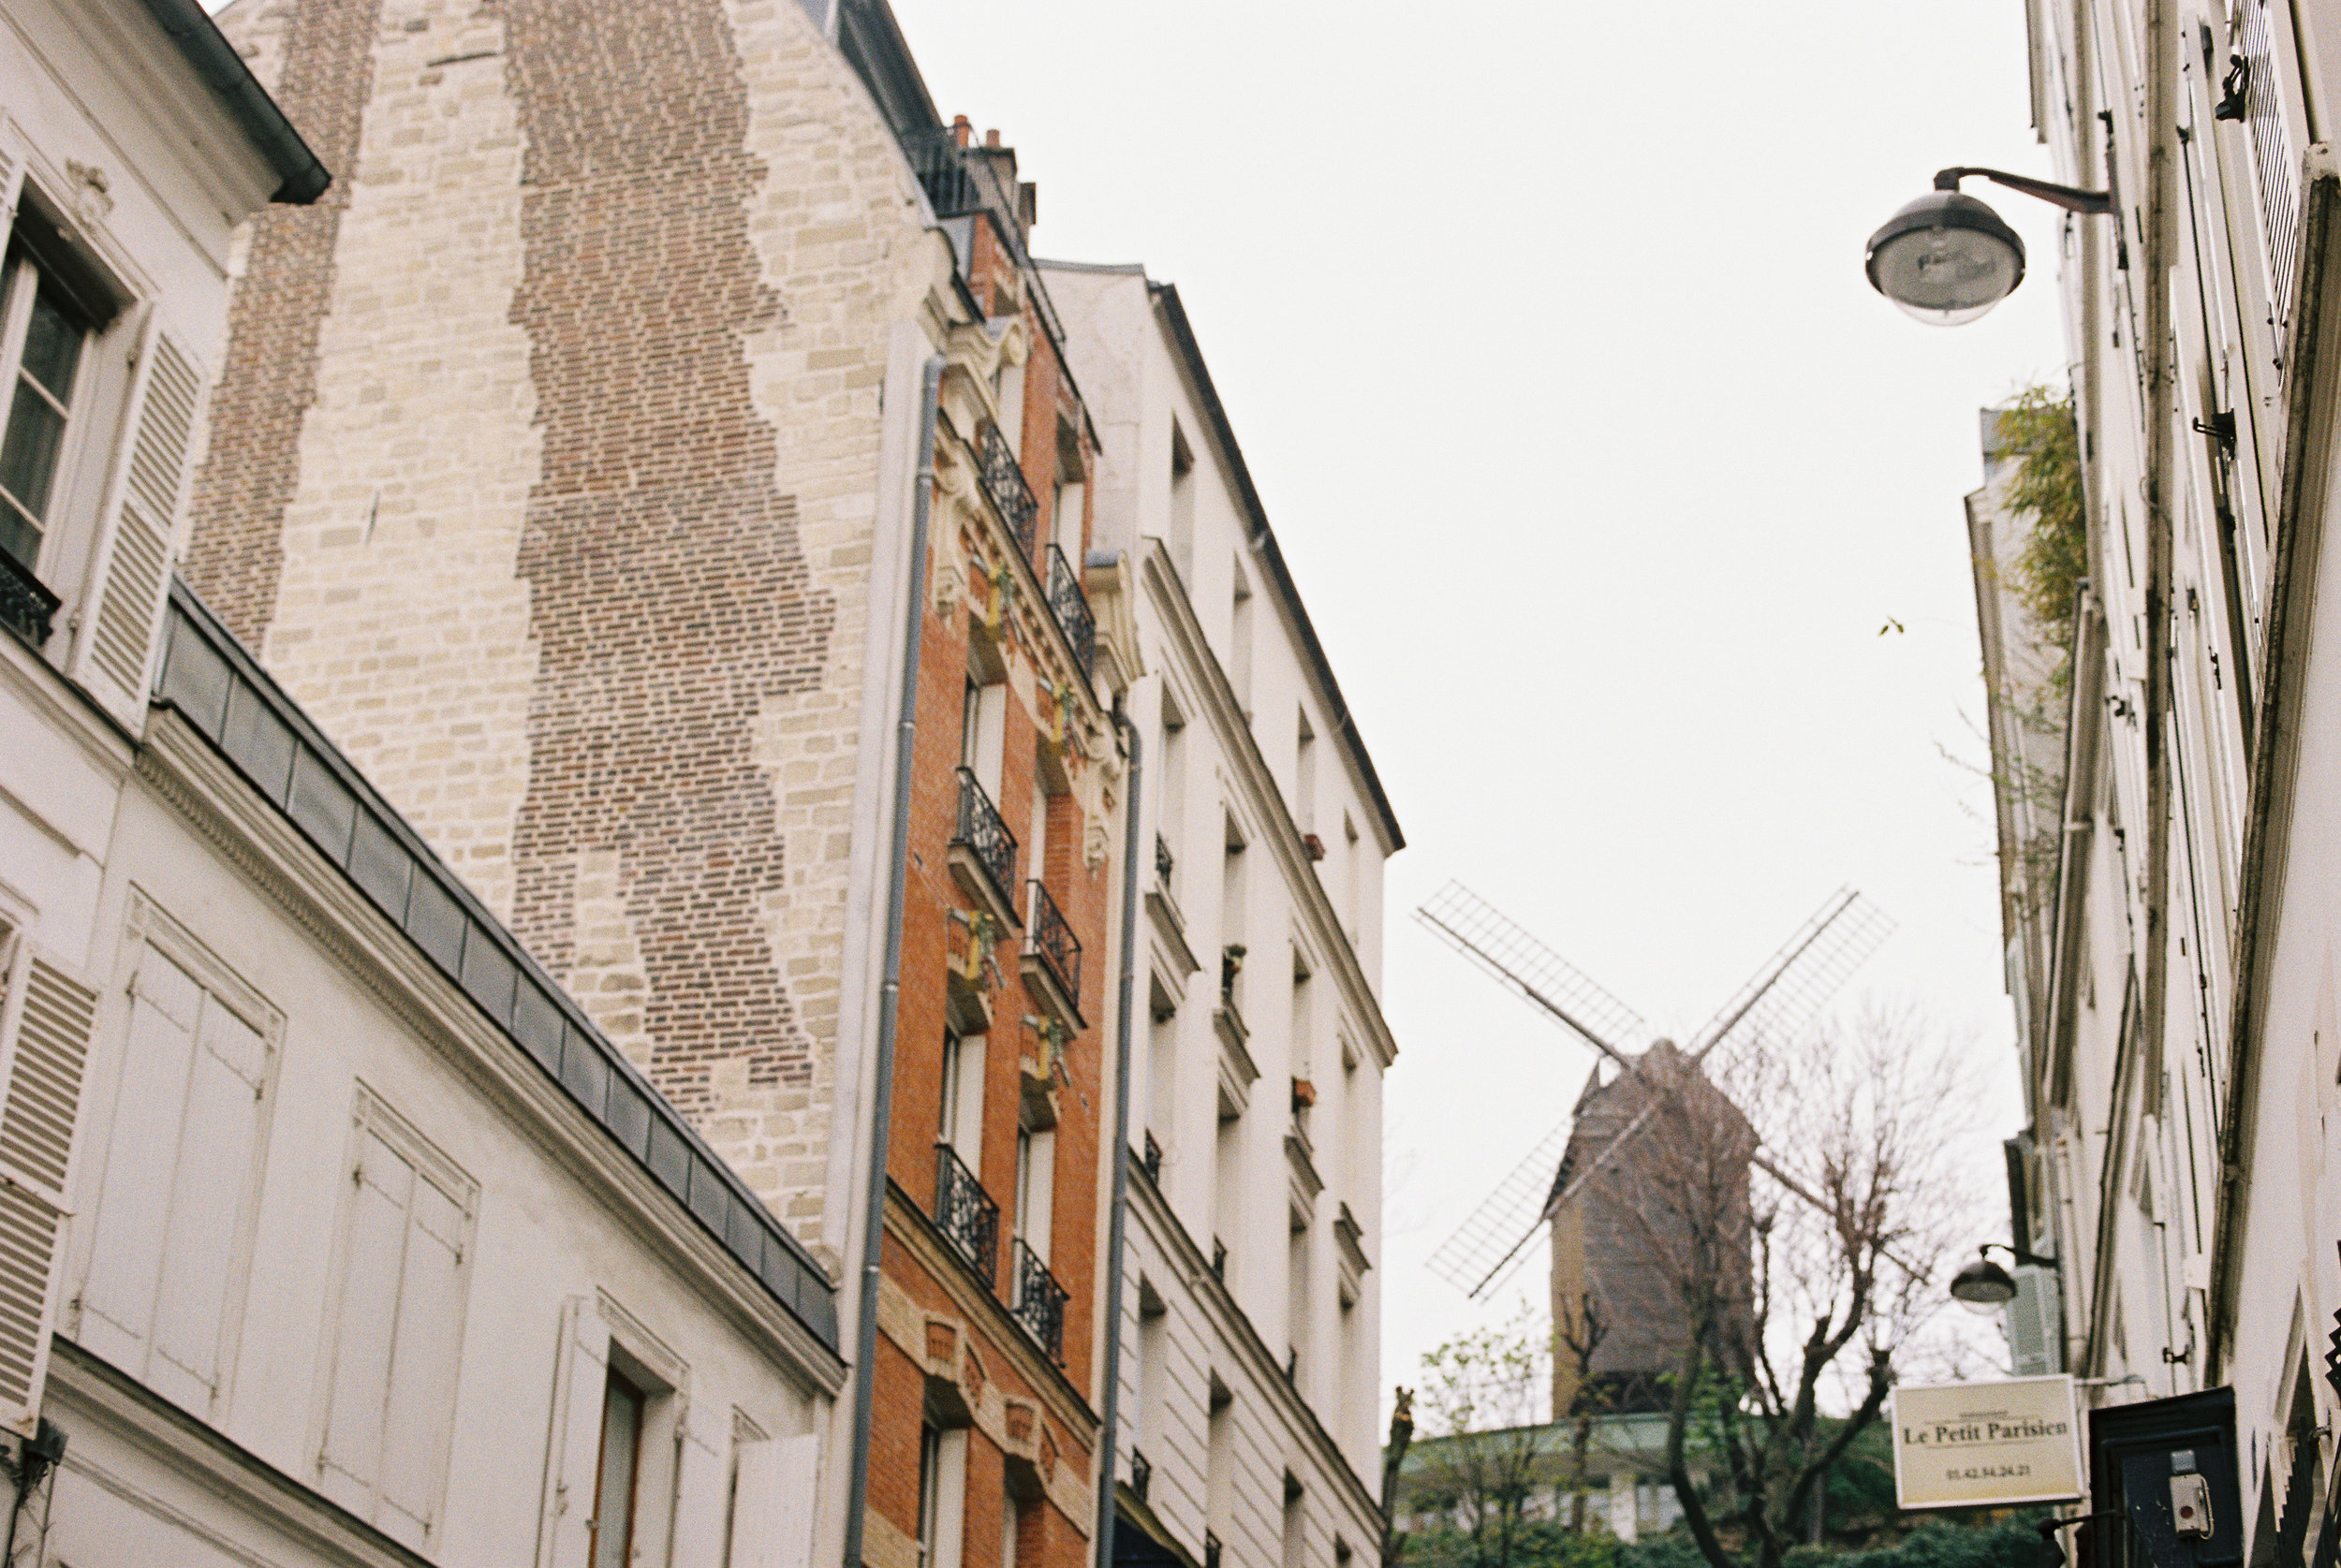 The streets of Montmartre, where we stayed in a third floor apartment.